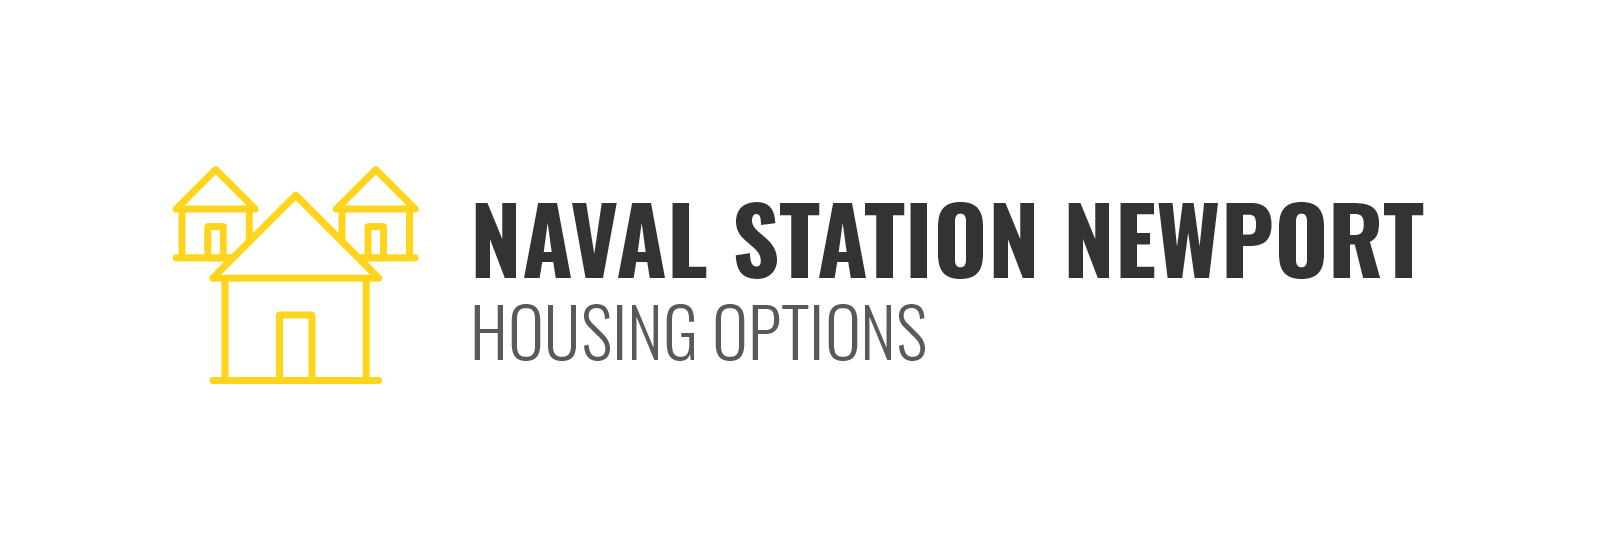 Naval Station Newport Housing Options